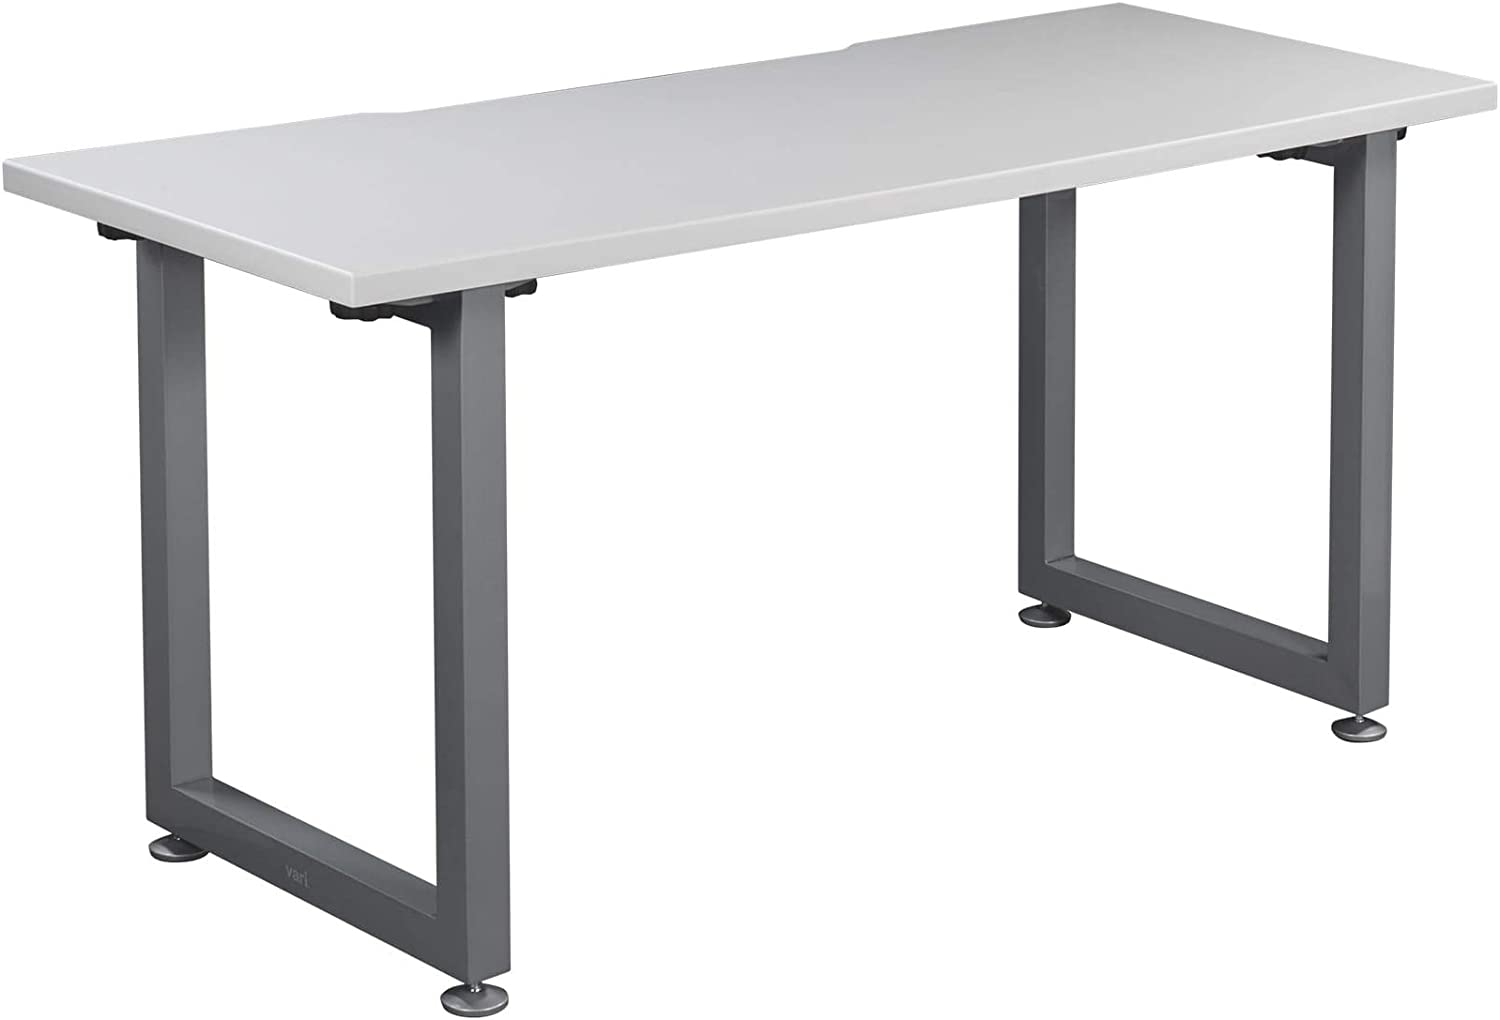 Vari Table (60x24) - Office Desk with Durable Finish & Cable Management Tray - (White)